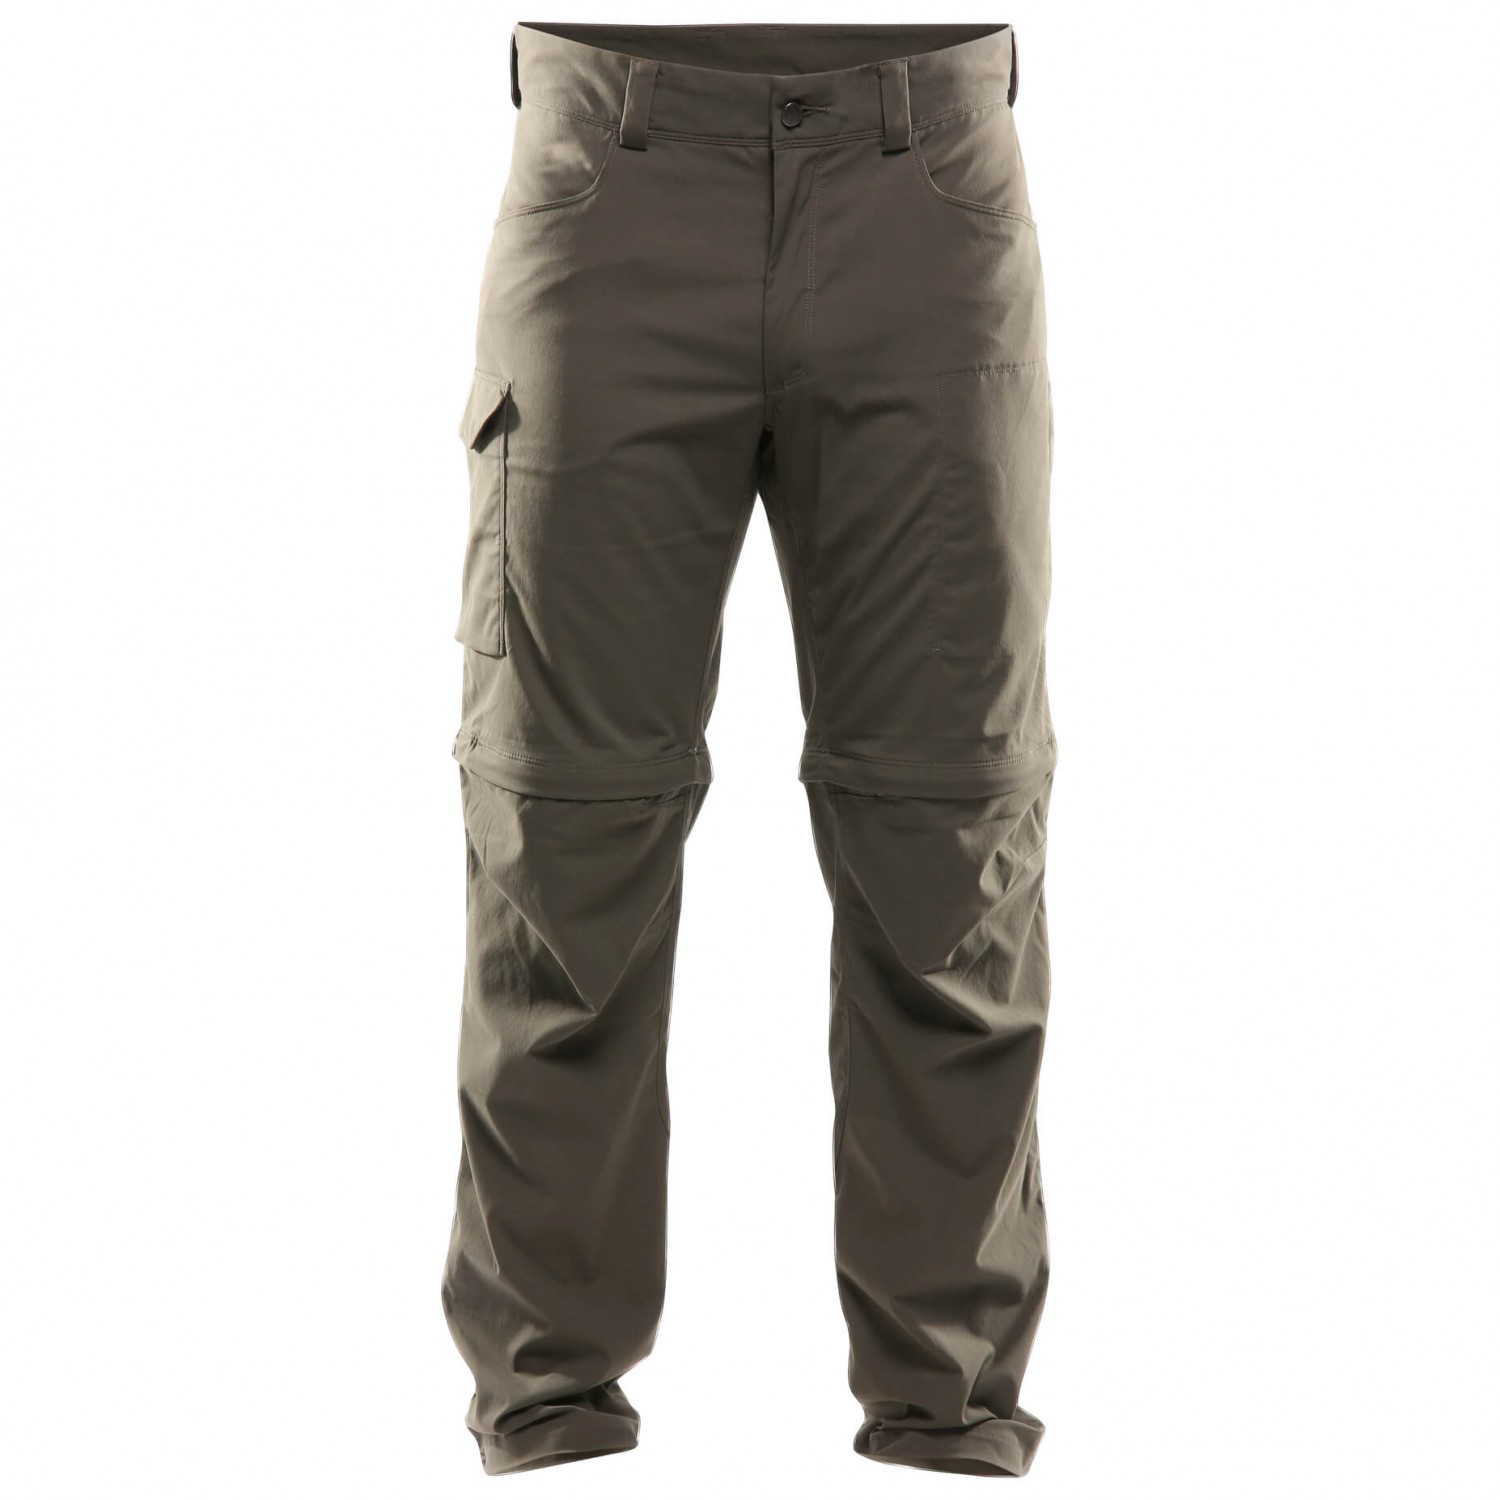 UNISEX WALKING TROUSERS ZIP OFF TROUSERS//SHORTS SHOWER RESISTENT